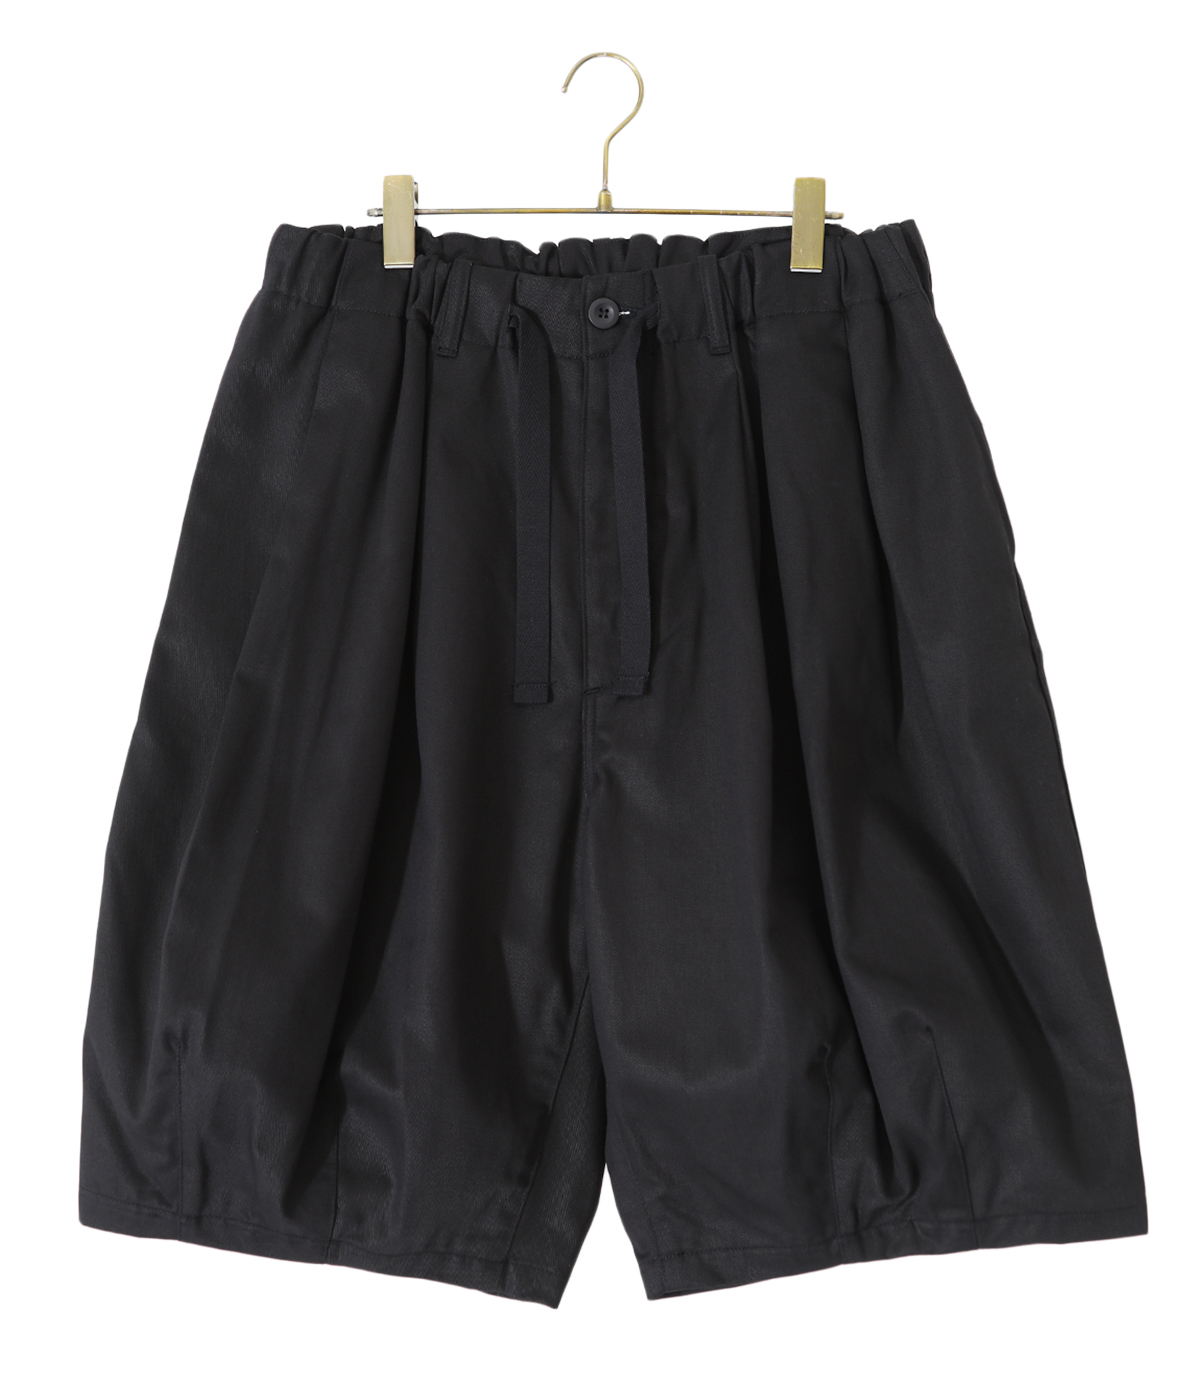 【予約】BALLOON EZ SHORTS